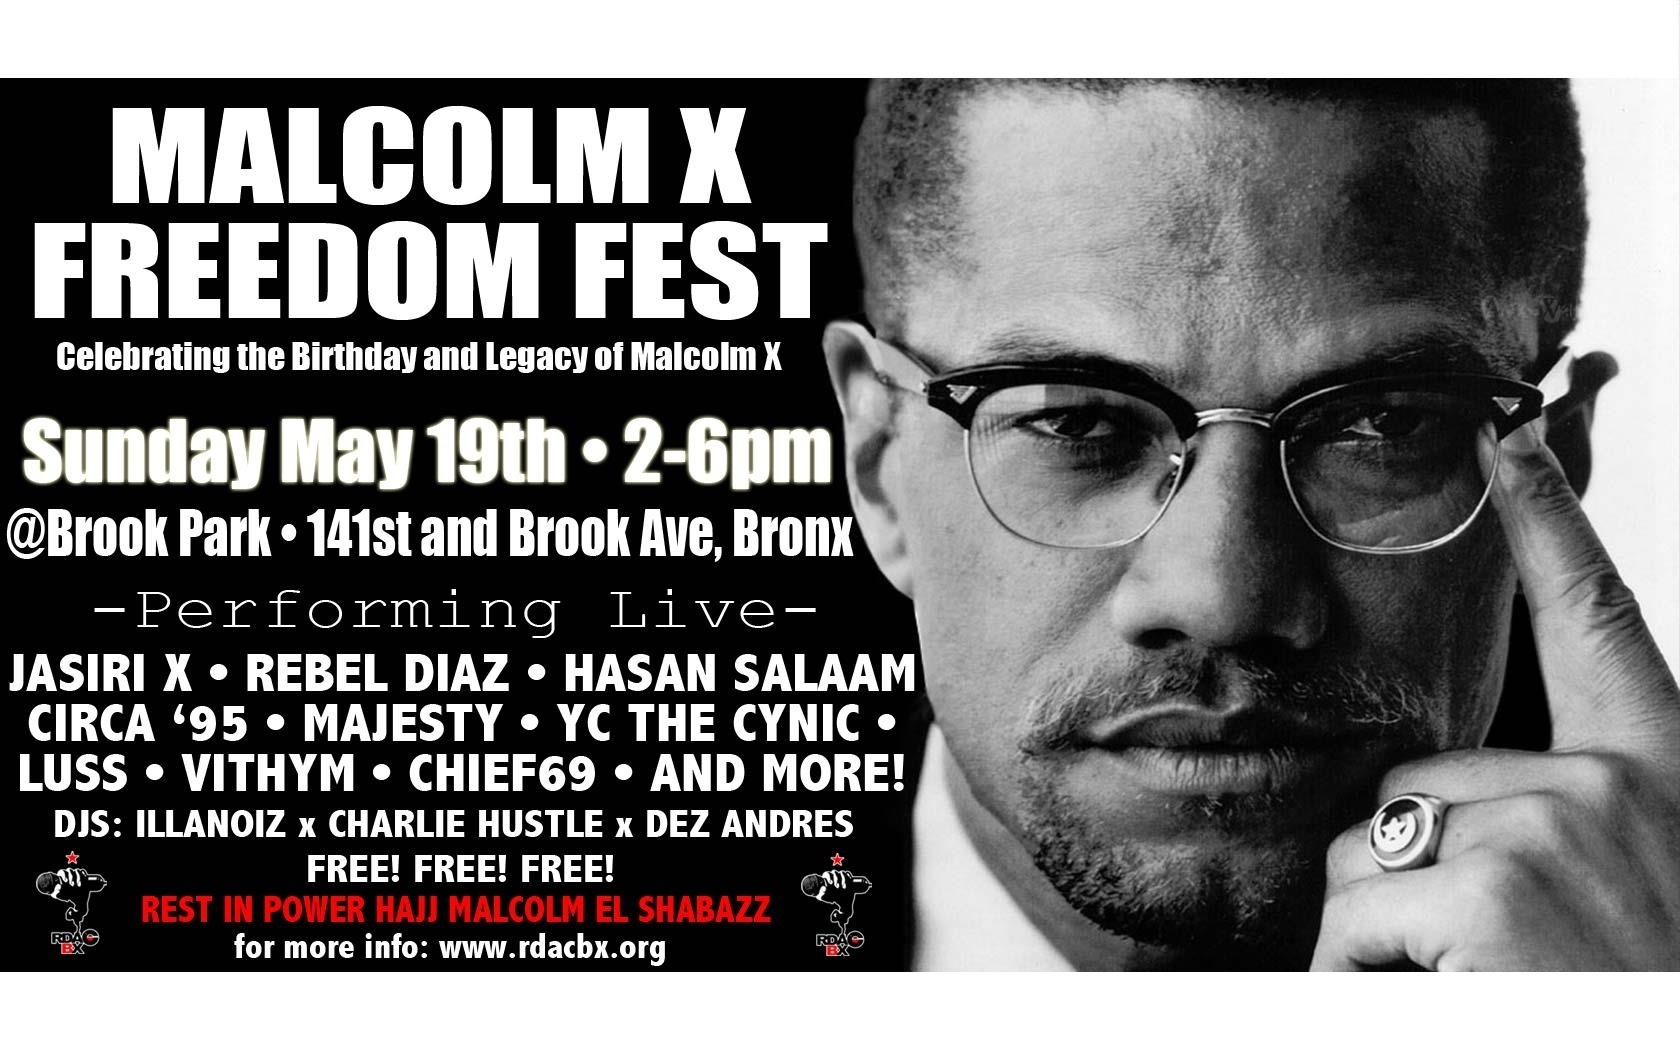 The Malcolm X Freedom Fest will feature some amazing Hip-Hop artists. Come thru and support my crew @circa95. The event is Free!